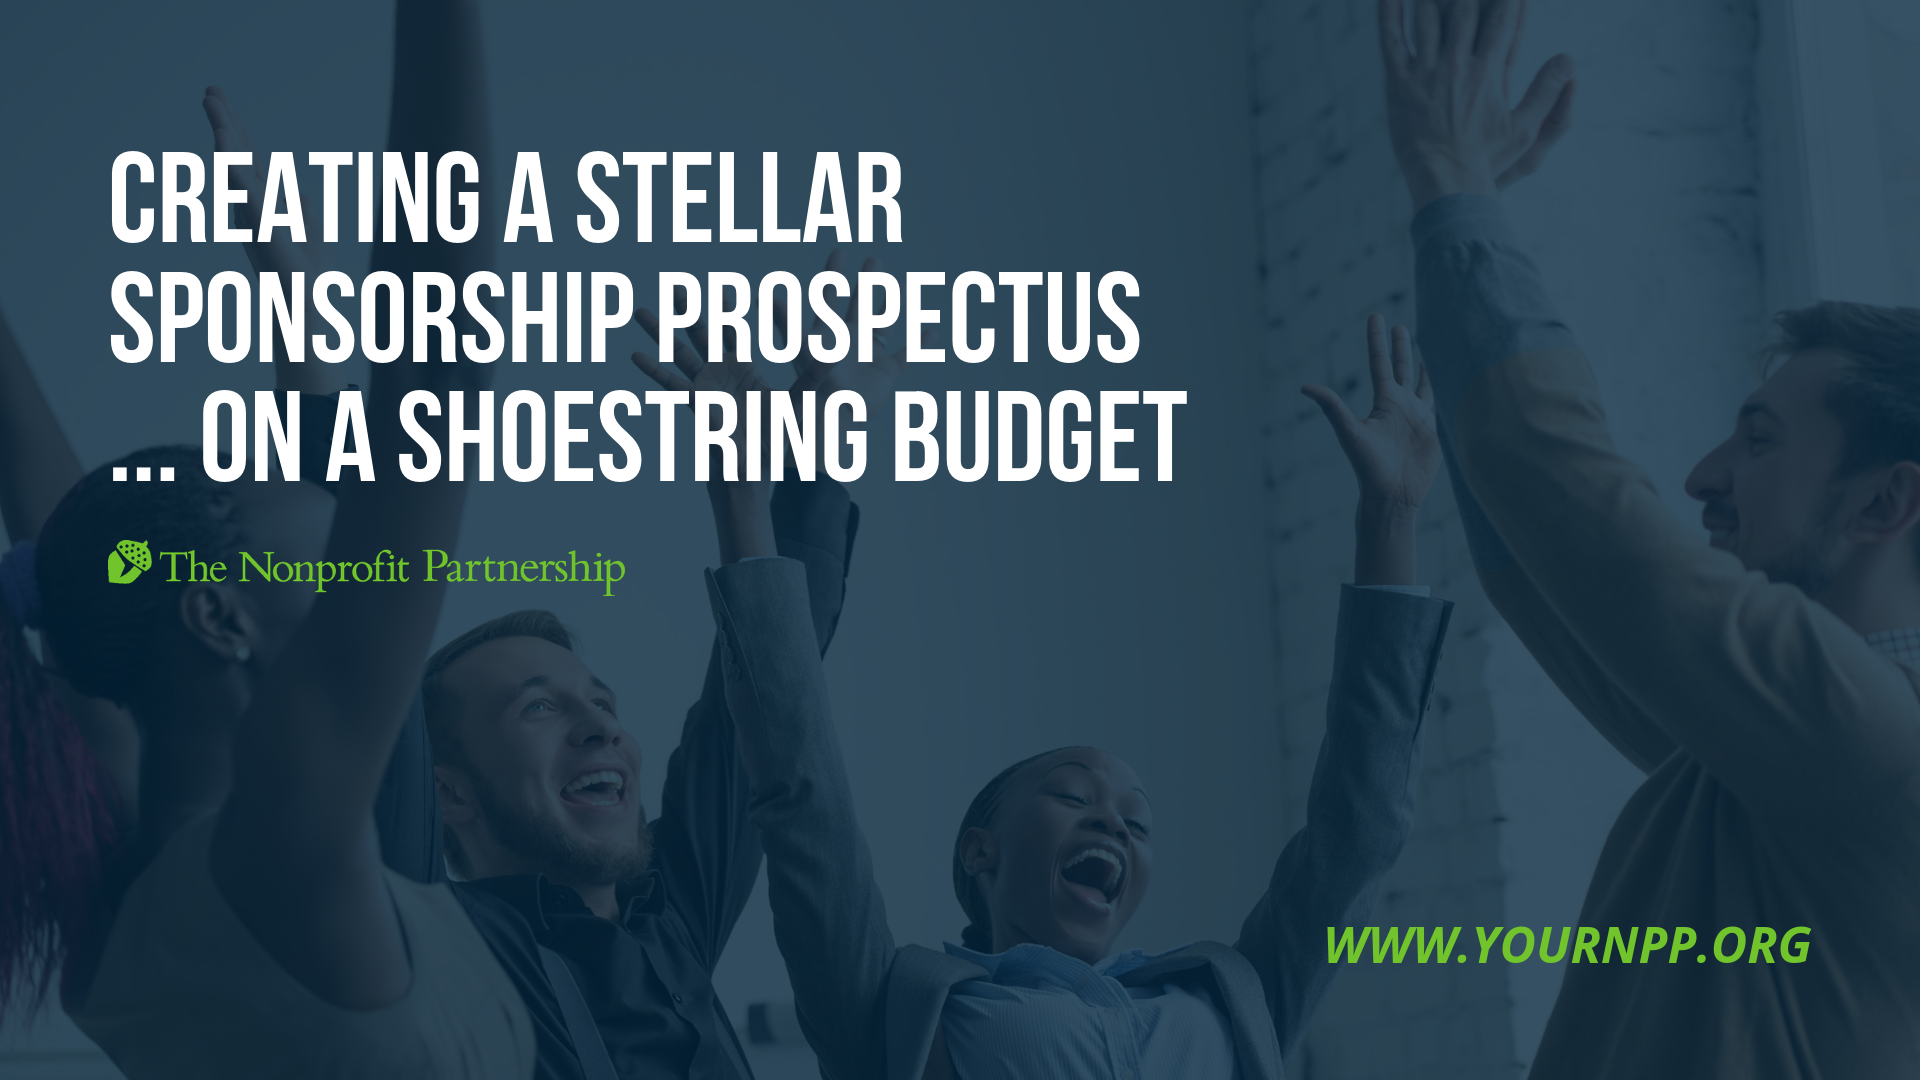 Creating a Stellar Sponsorship Prospectus... on a Shoestring Budget